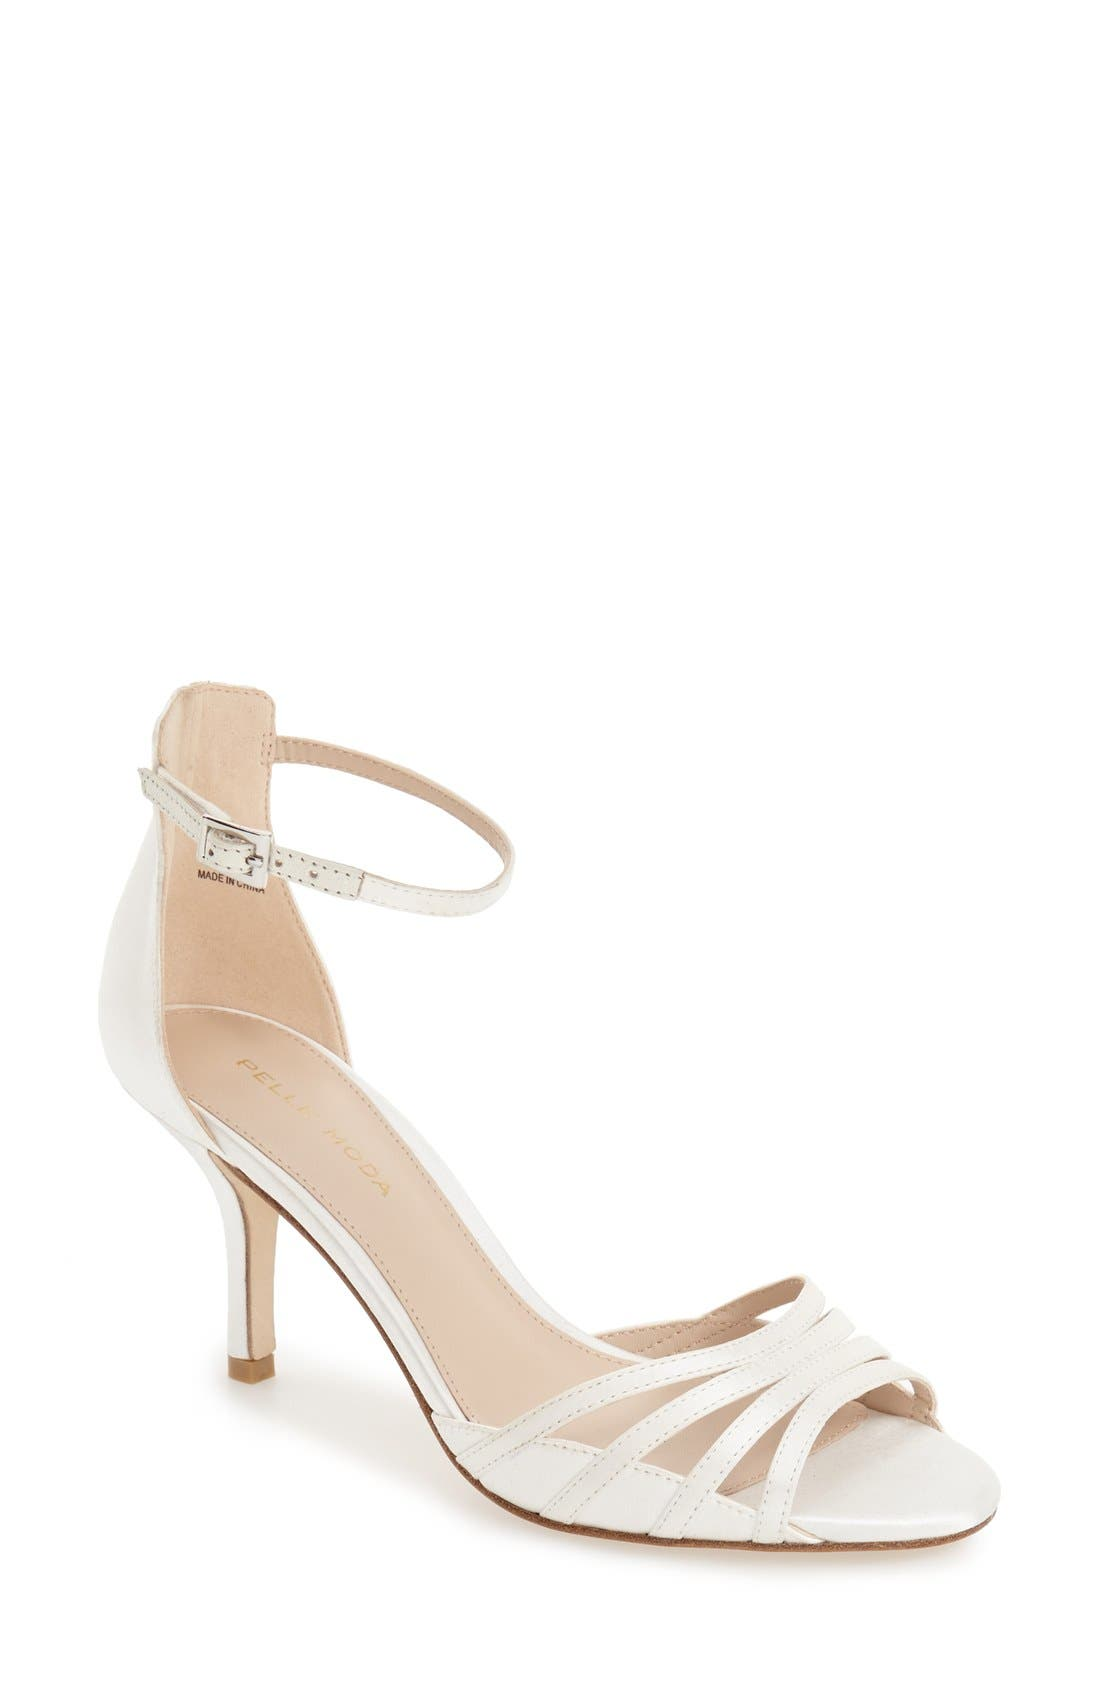 'Isabel 2' d'Orsay Sandal,                         Main,                         color, White Leather